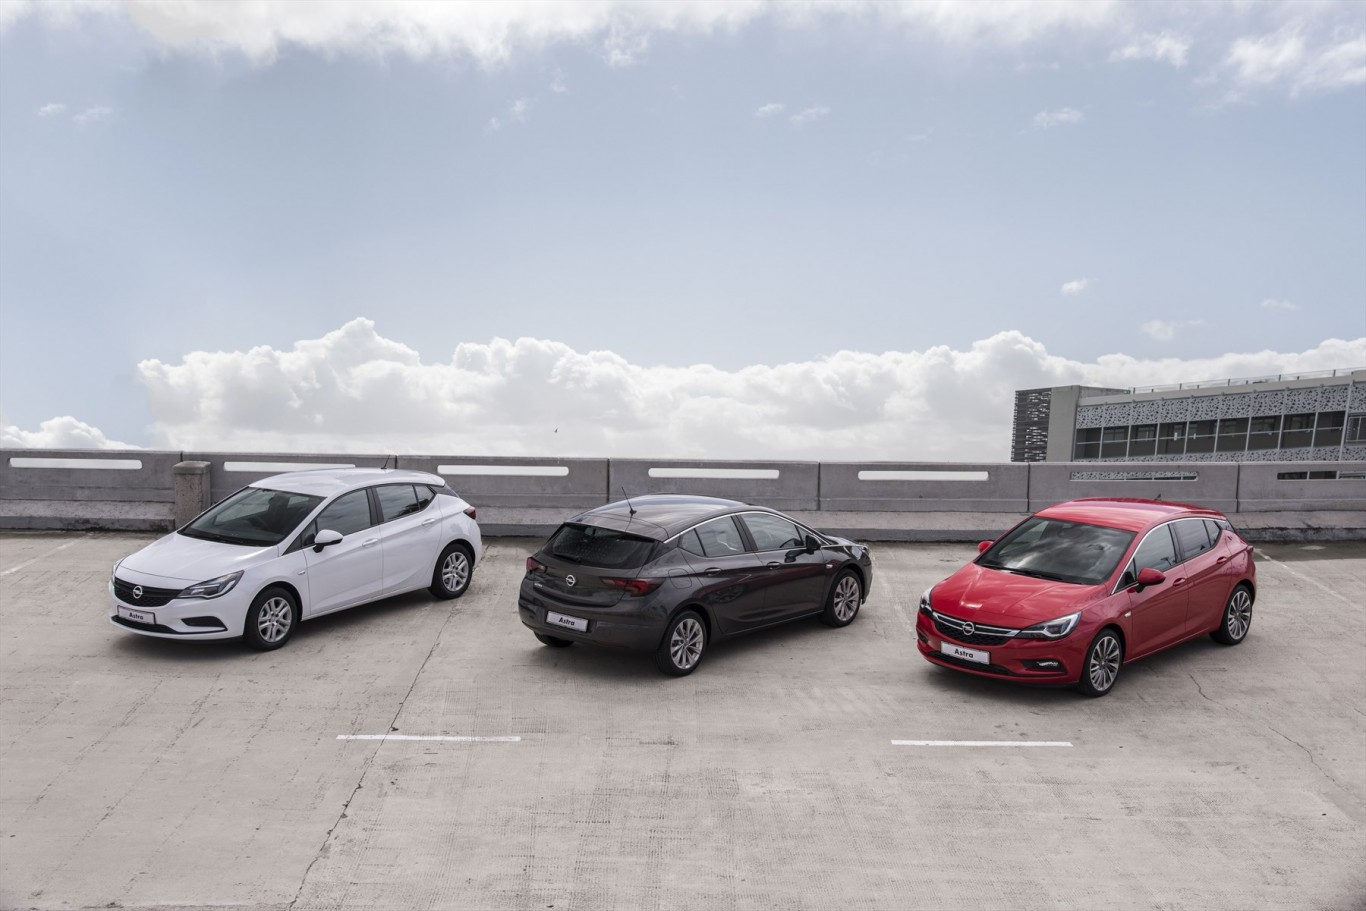 Opel's 2016 European Car of the Year Arrives in South Africa